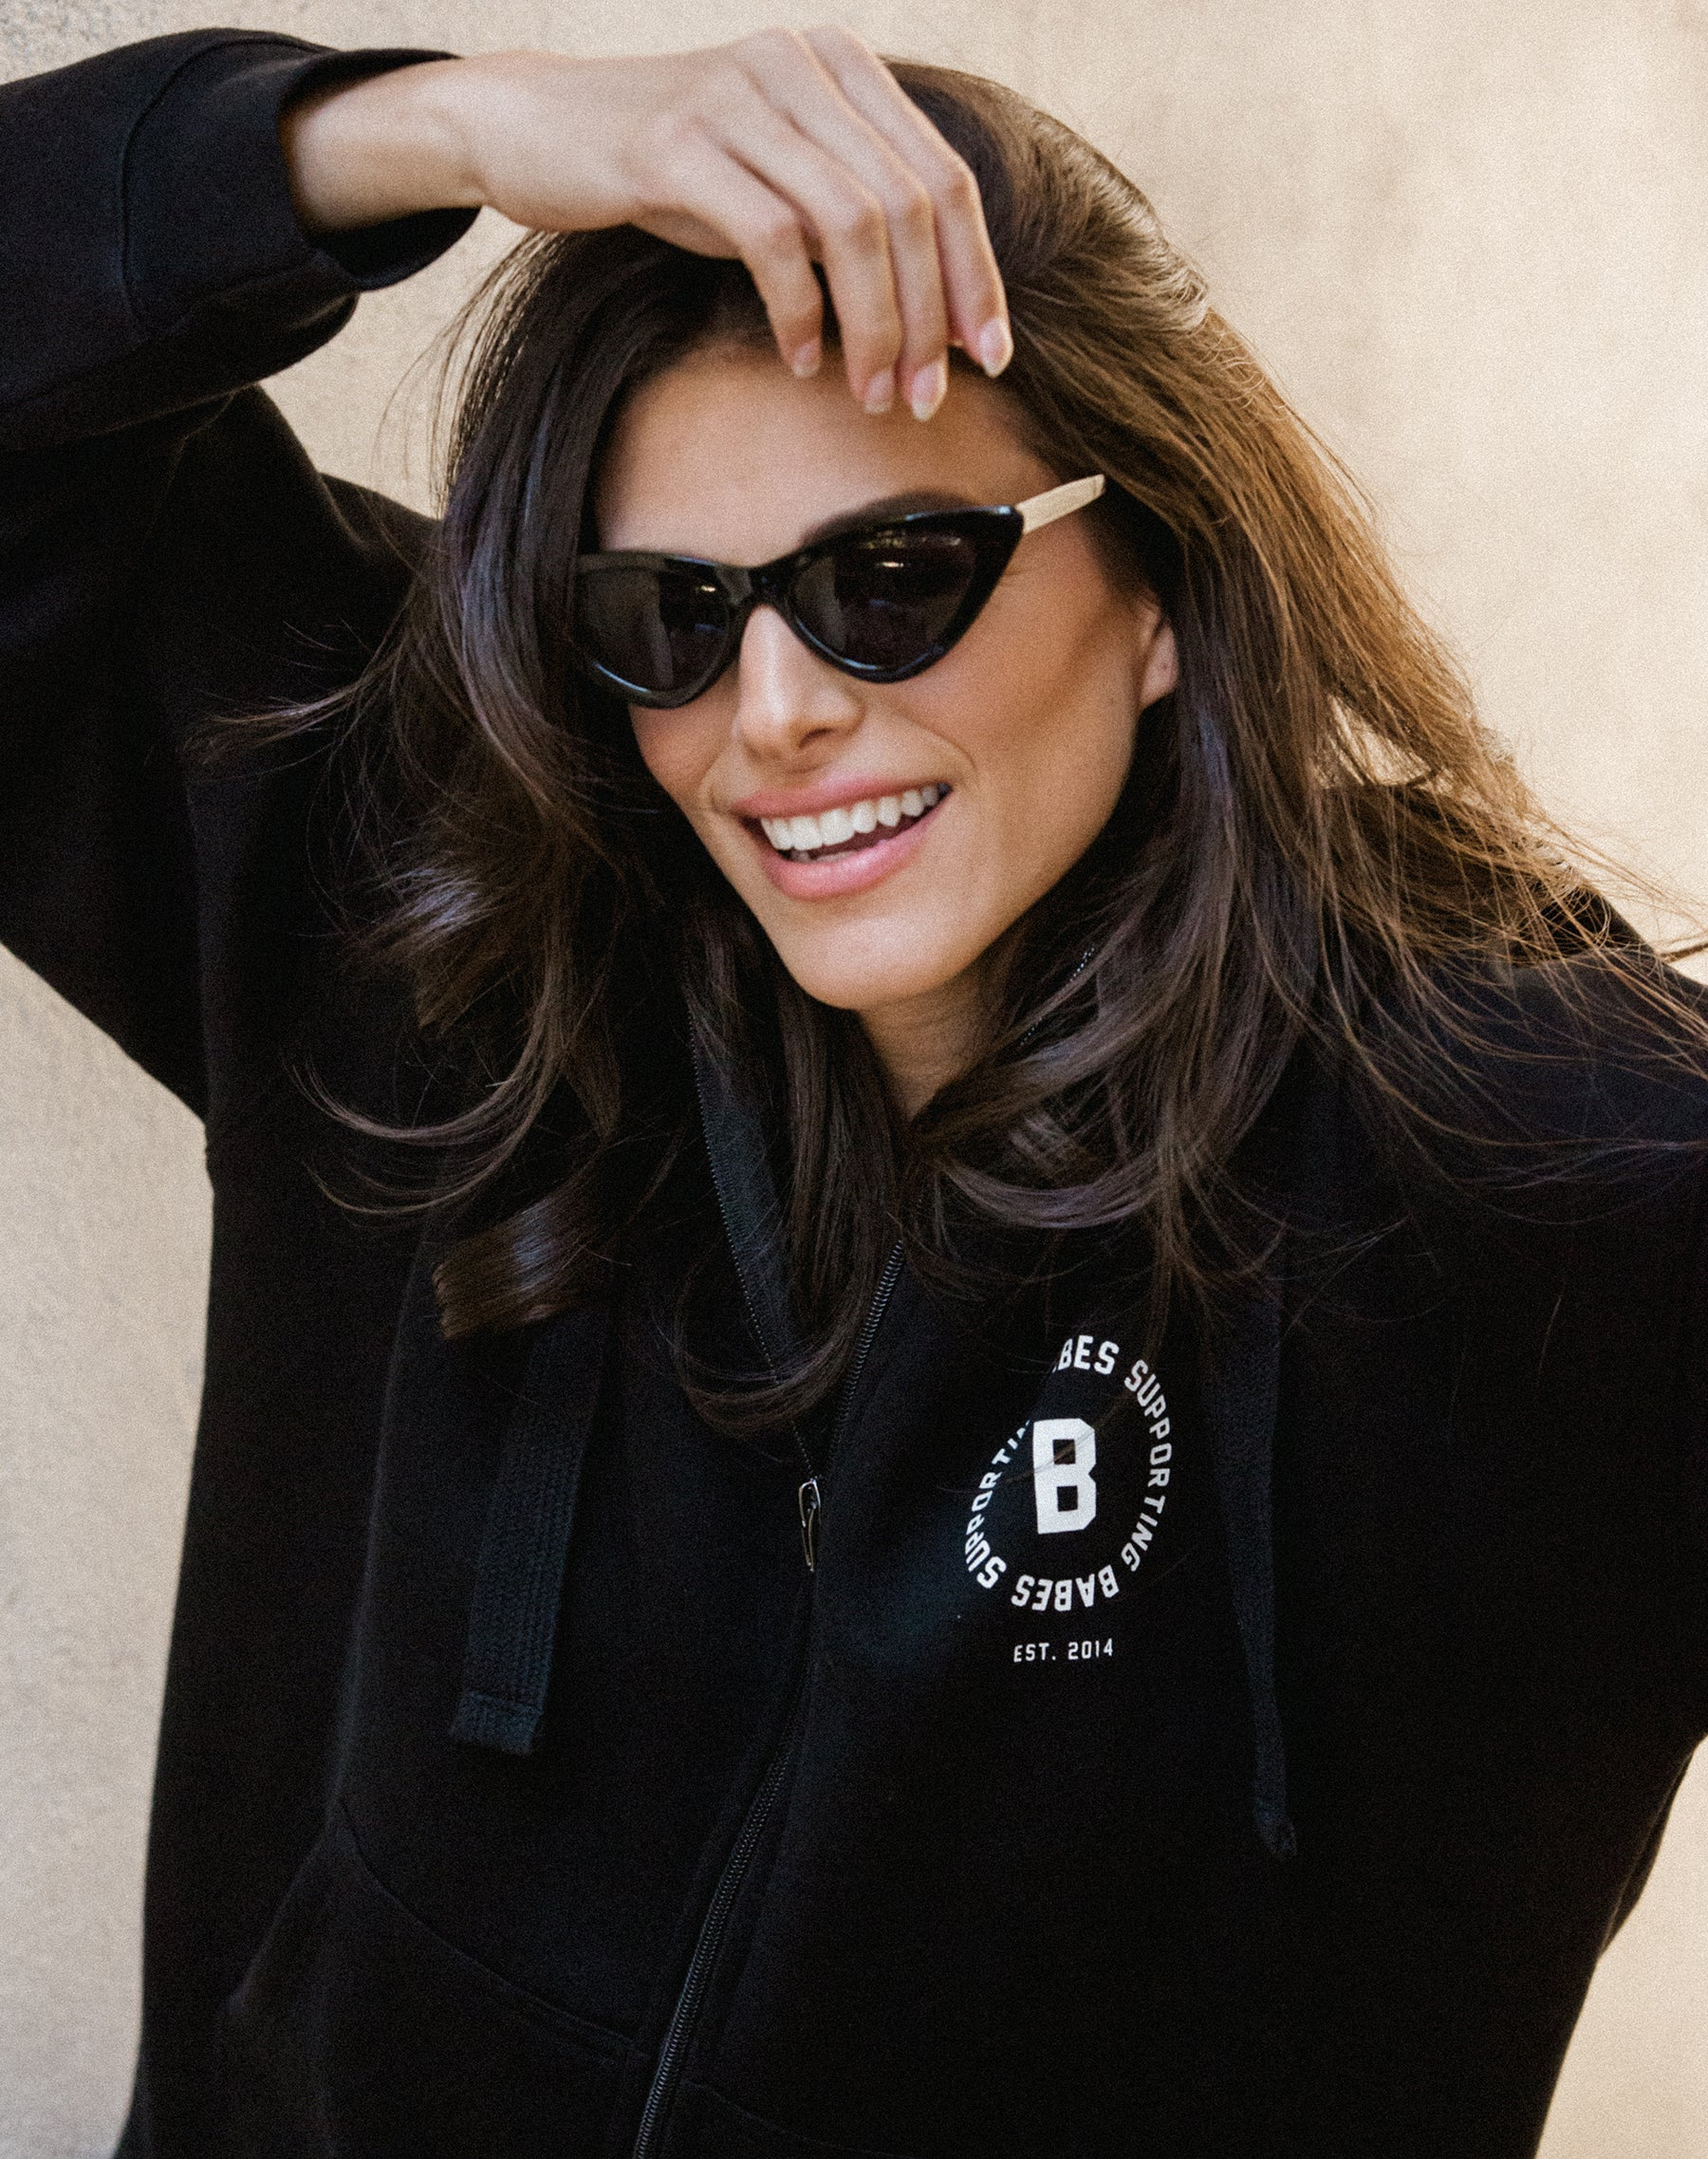 Photo 2 of the Babes Supporting Babes big sister zip up hoodie in black by Brunette the Label.